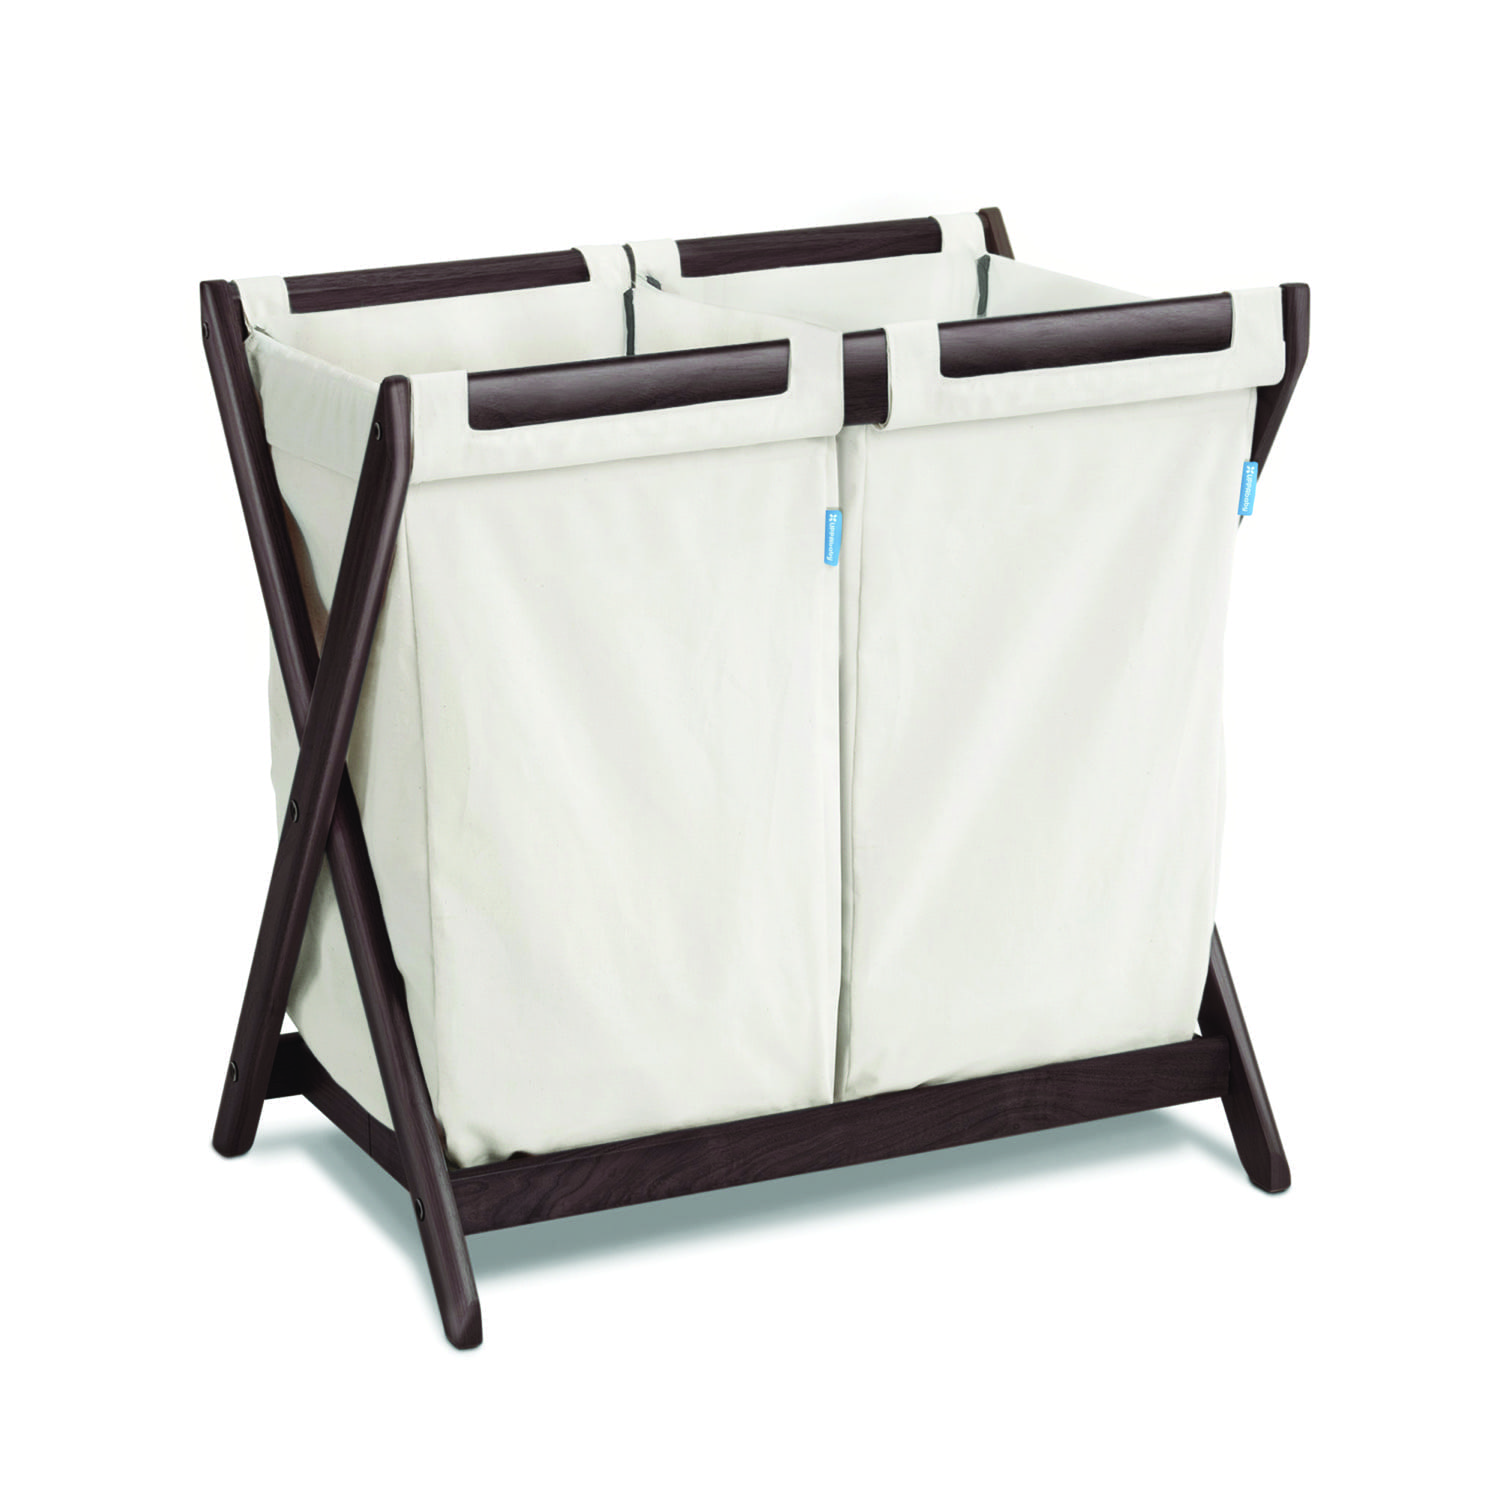 UPPAbaby Carry Cot Stand Hamper Insert product image